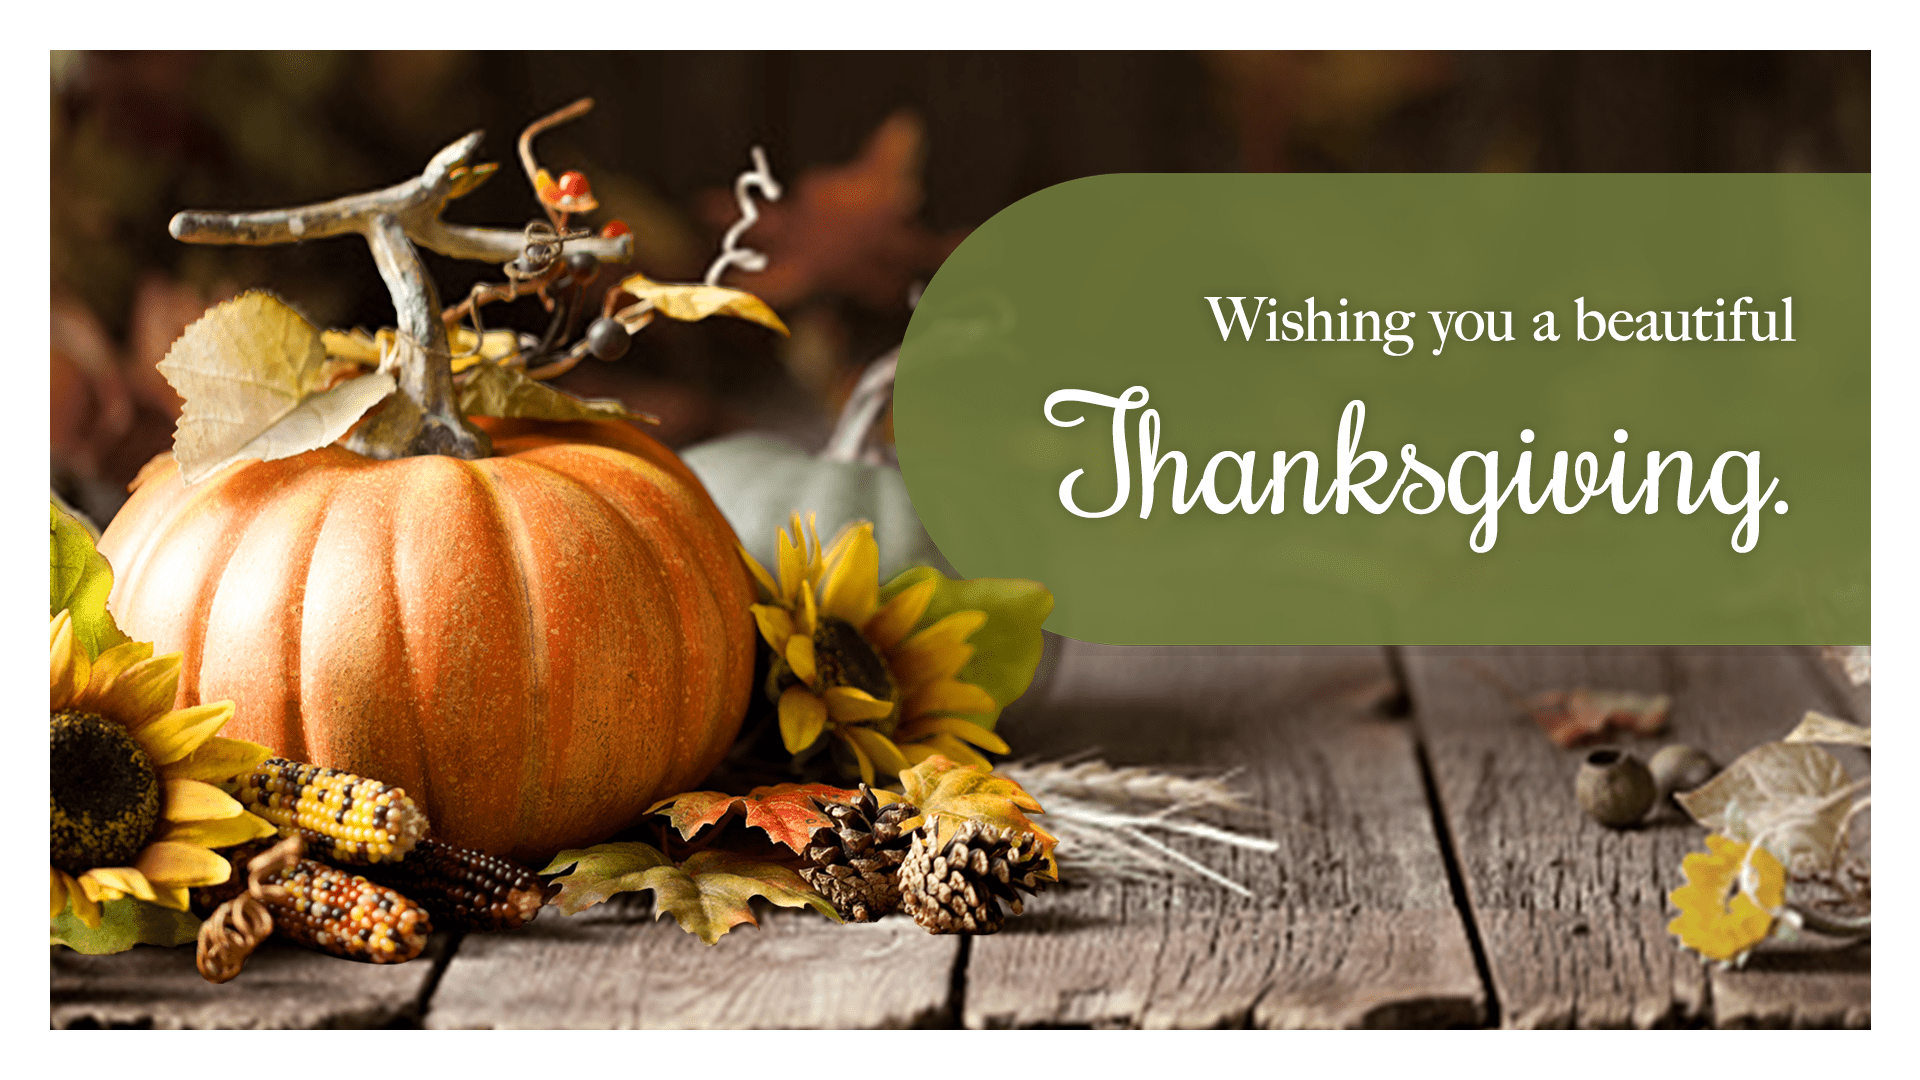 Wishing you a beautiful Thanksgiving.